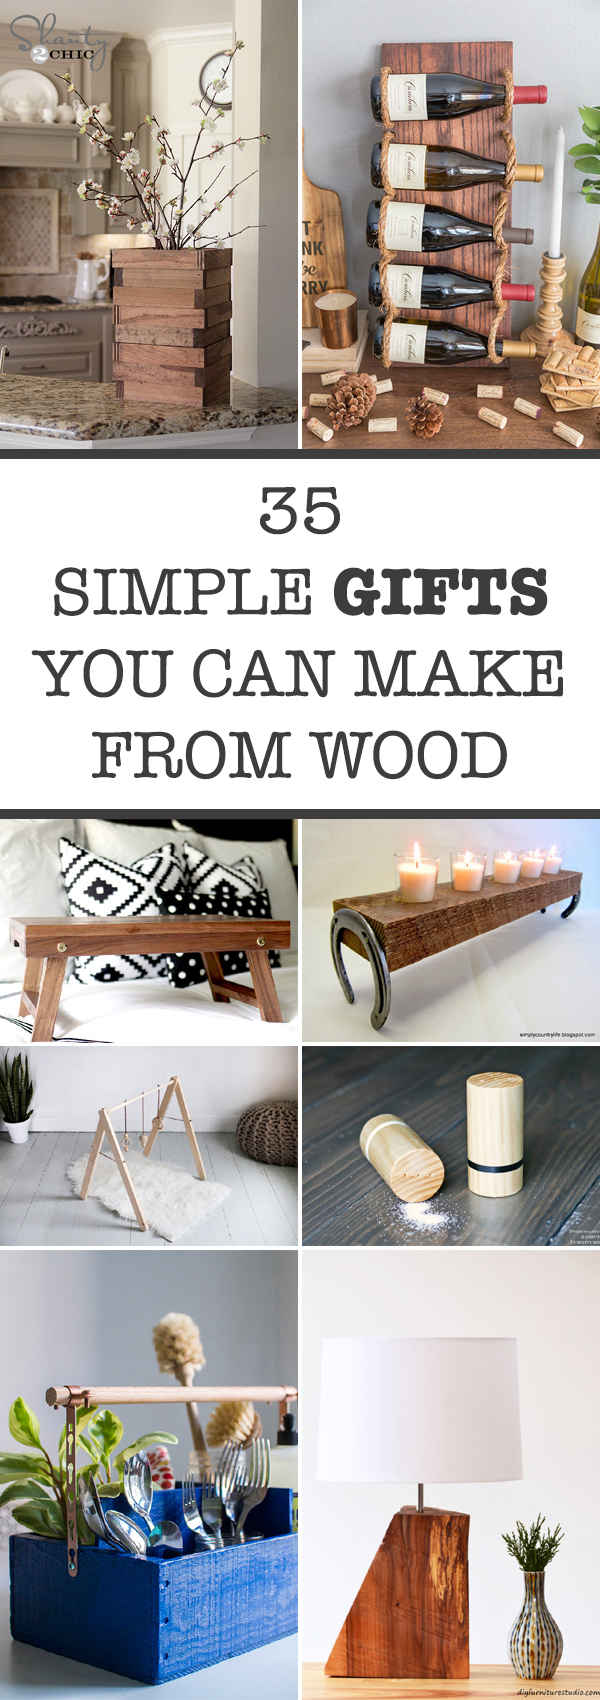 35 Simple Gifts You Can Make From Wood